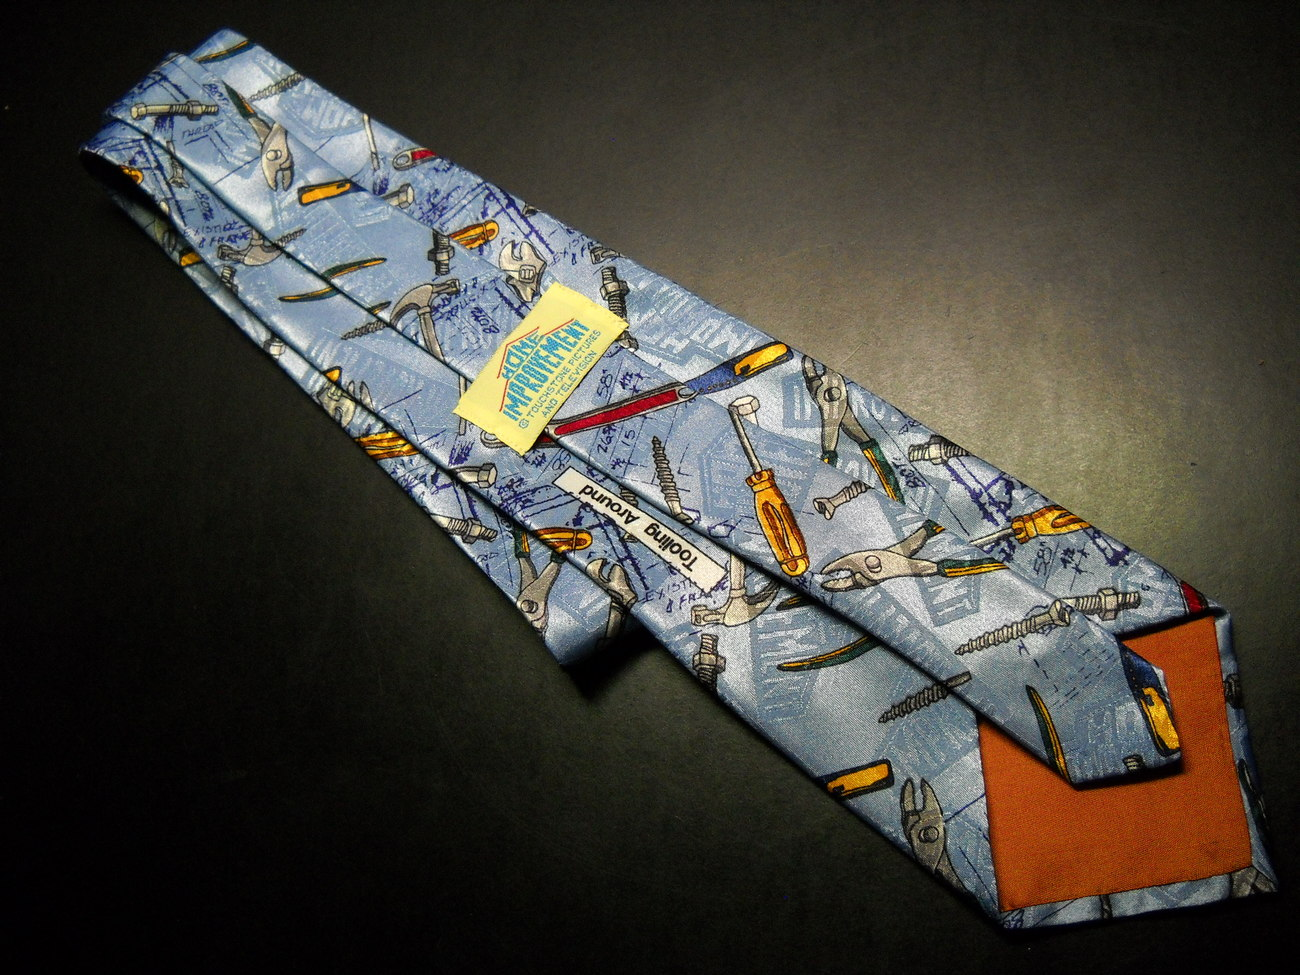 Home Improvement Dress Neck Tie Titled Tooling Around Blue Hues with Tools